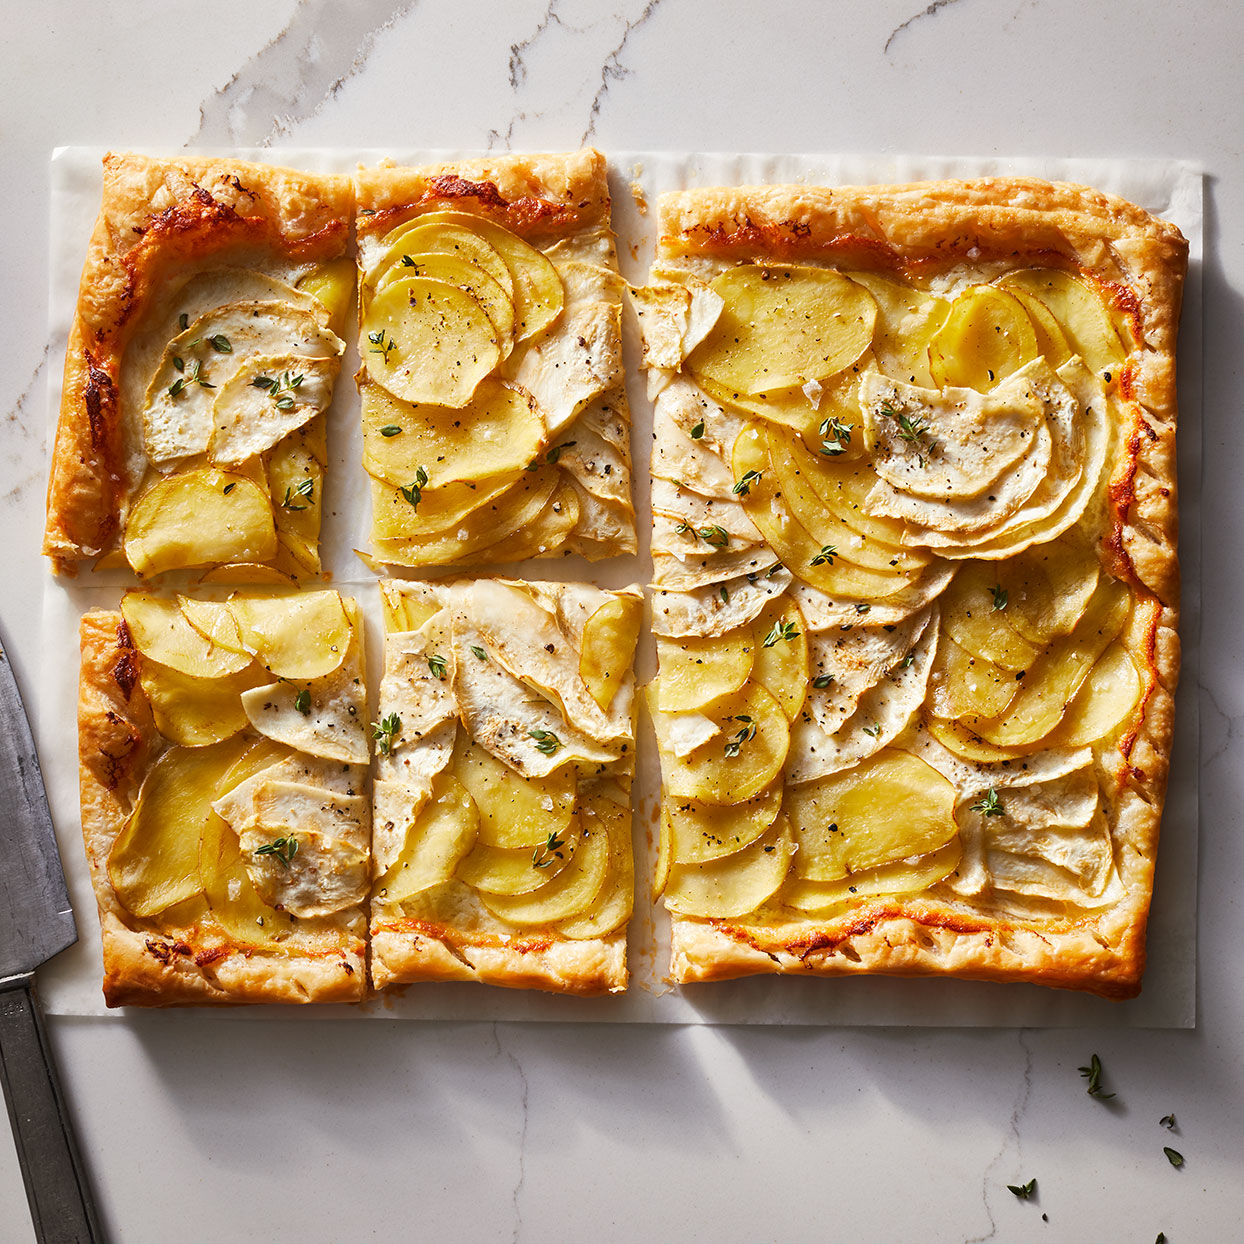 Celeriac, Gruyère & Potato Tart Trusted Brands